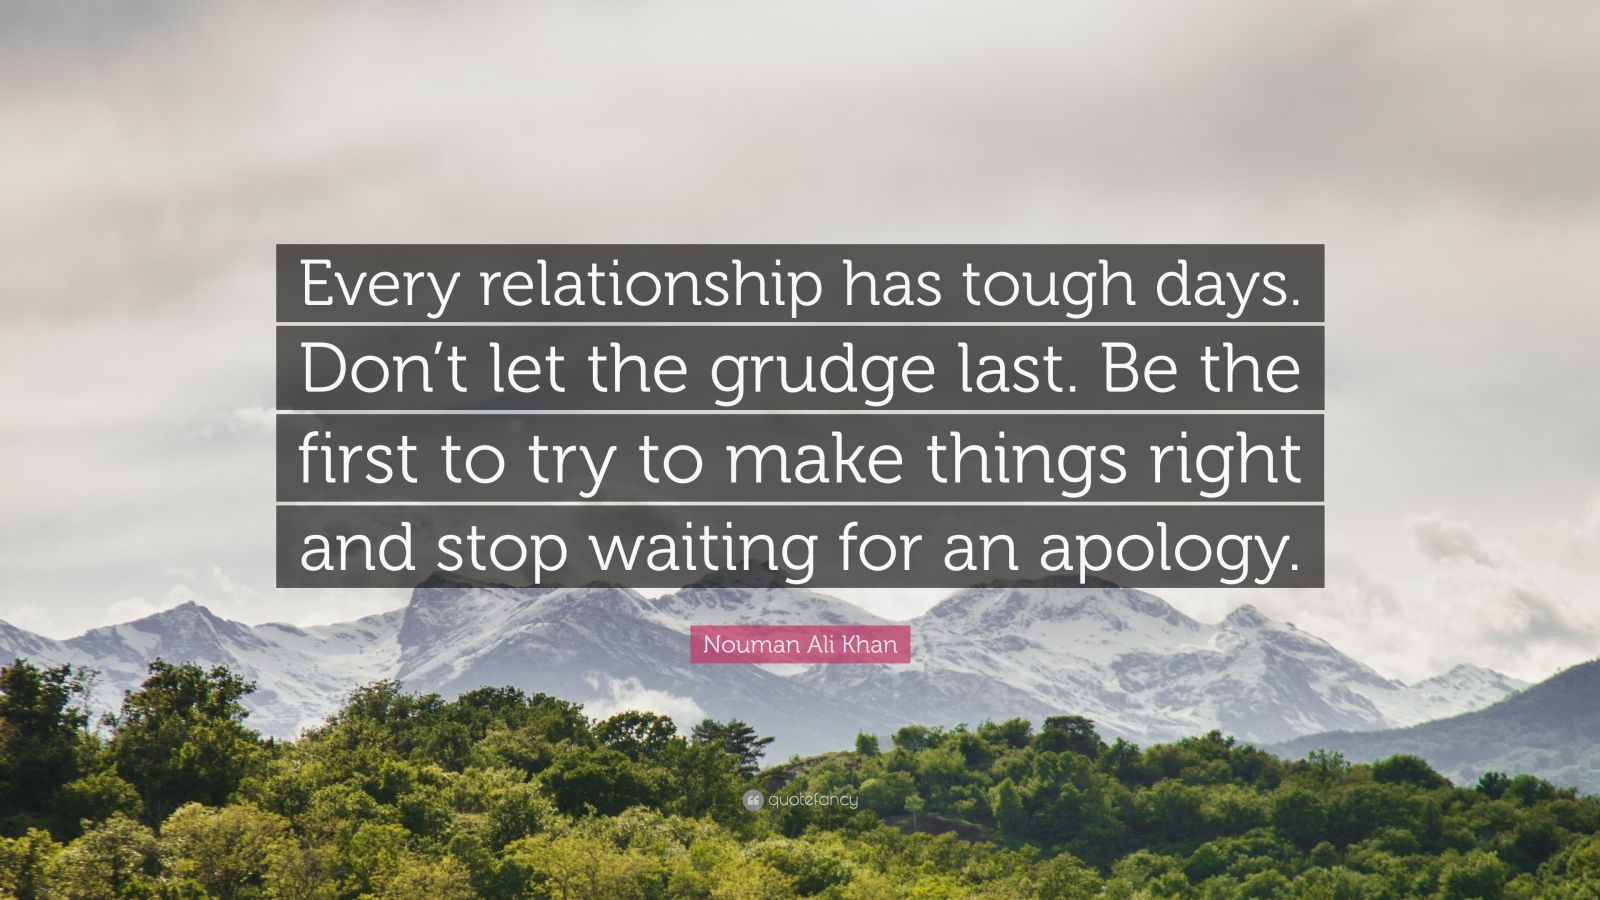 """Nouman Ali Khan Quote: """"Every relationship has tough days. Don't let the grudge last. Be the first to try to make things right and stop waiting for an apology."""""""